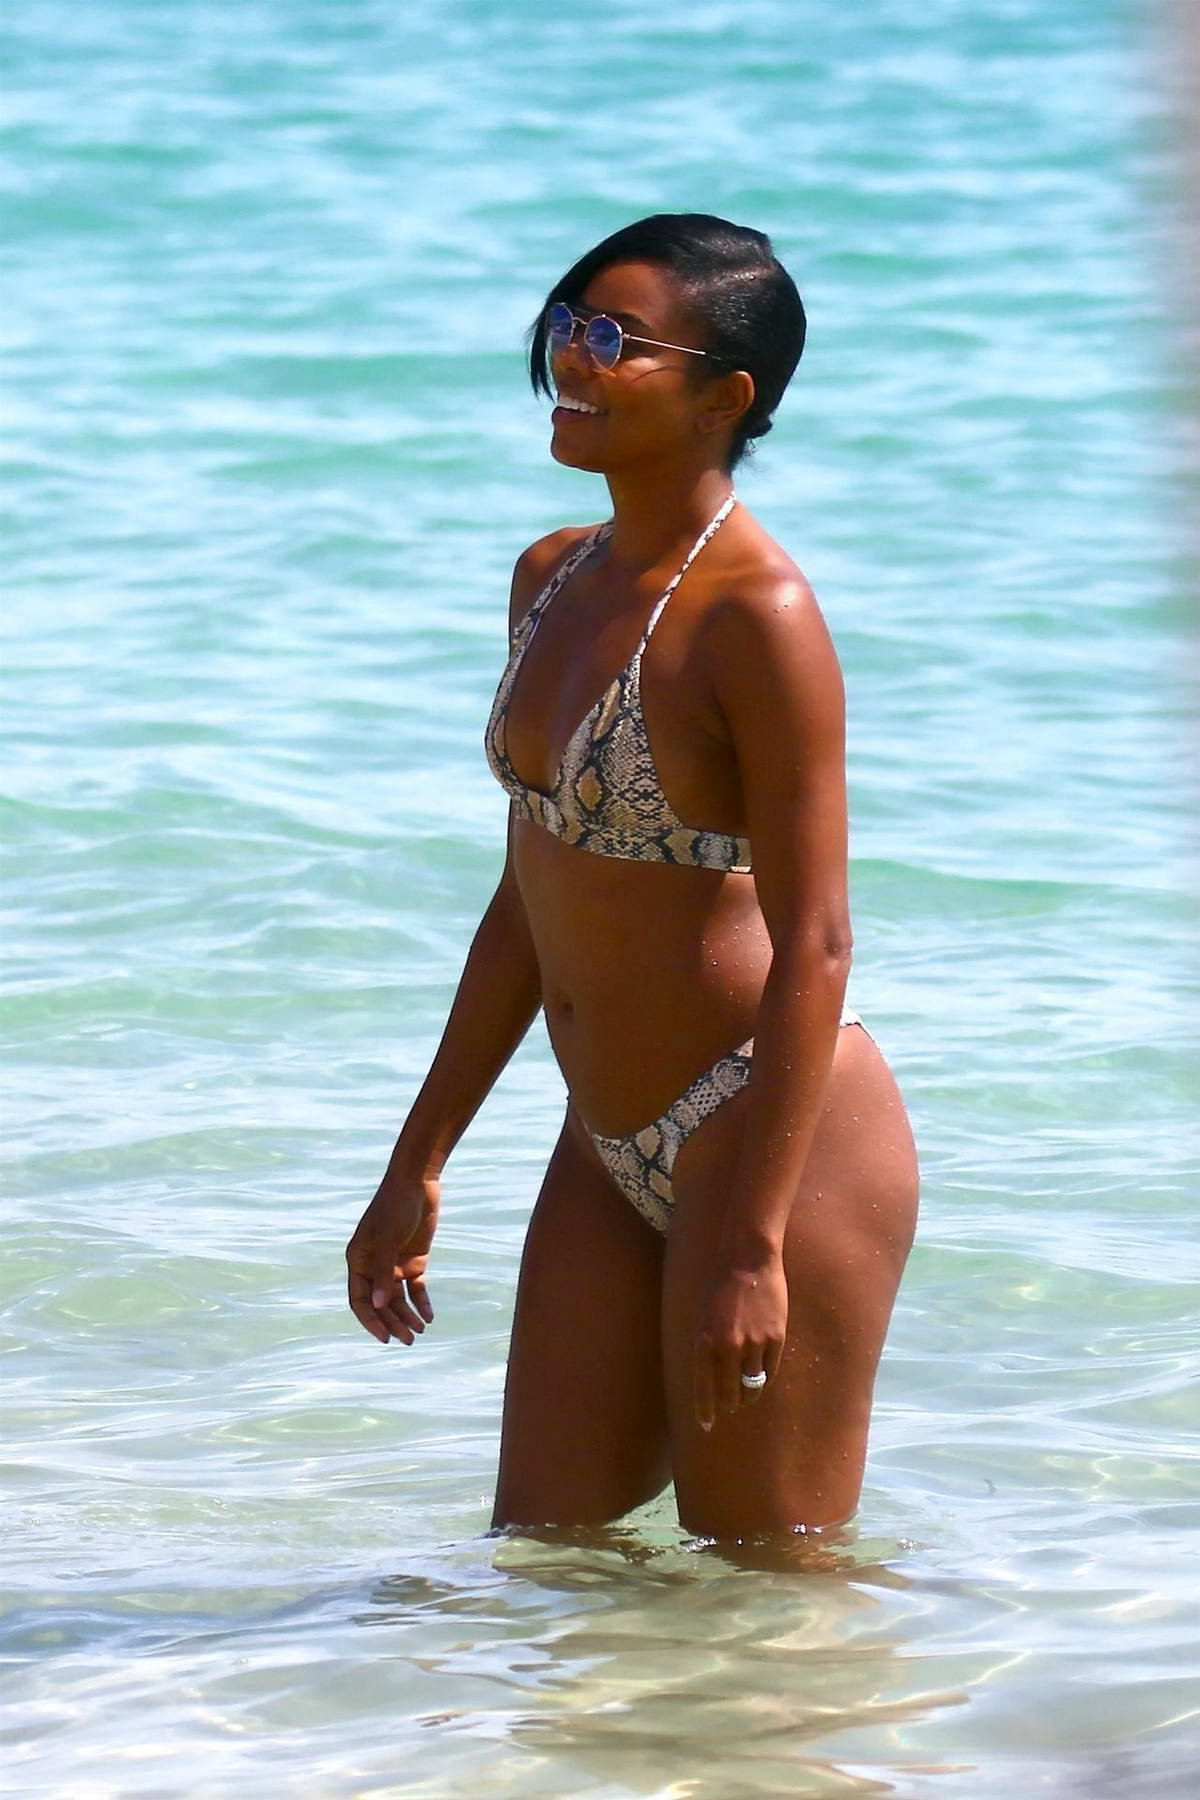 Gabrielle Union spotted in snakeskin print bikini while having fun on the beach in Cannes, France